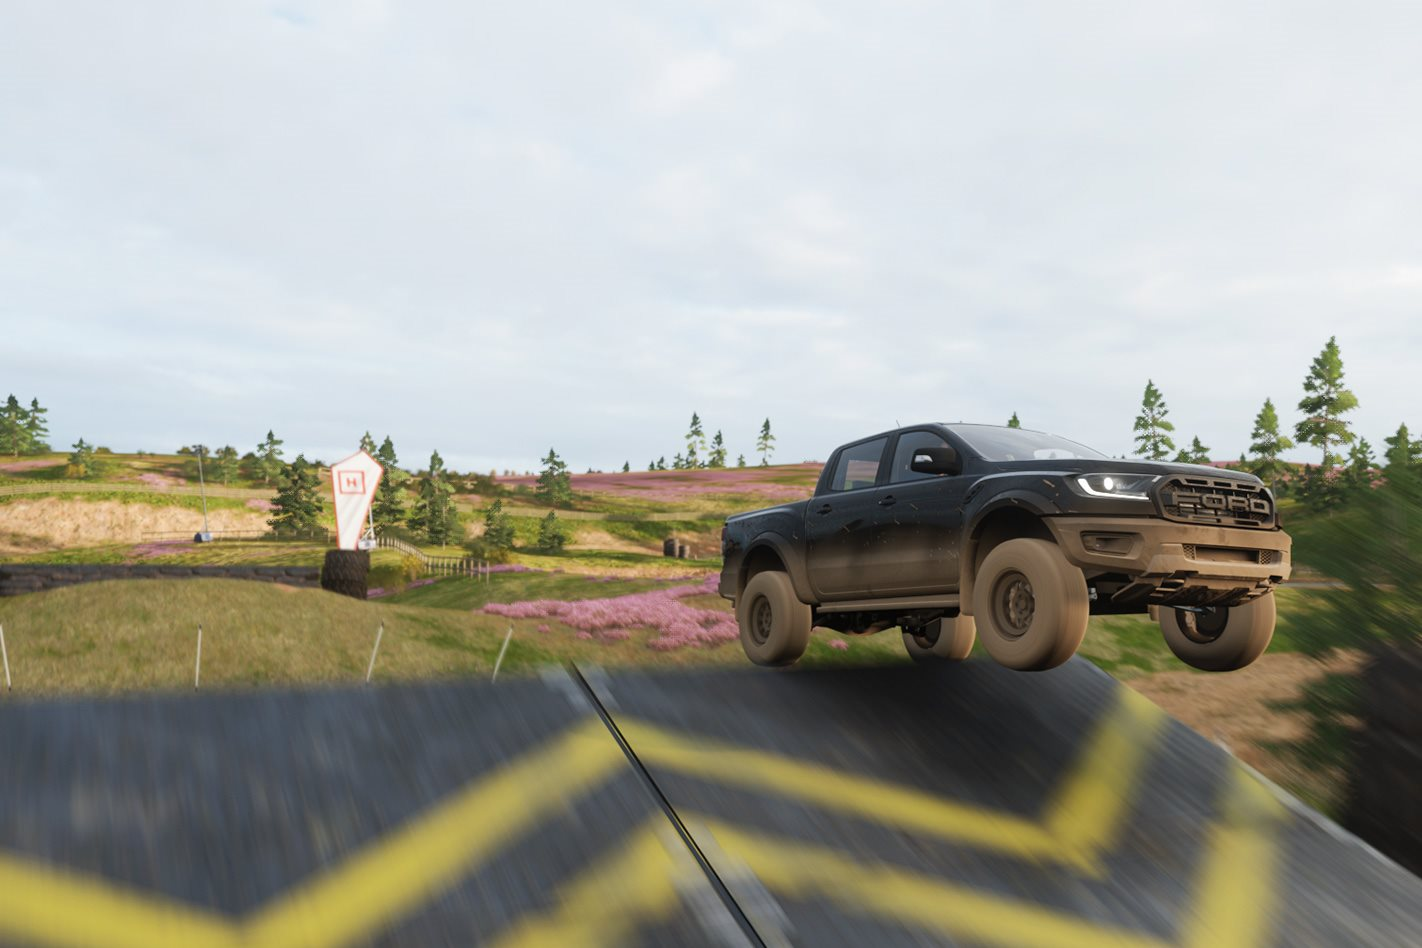 Forza Horizon 4 review: is it still good?